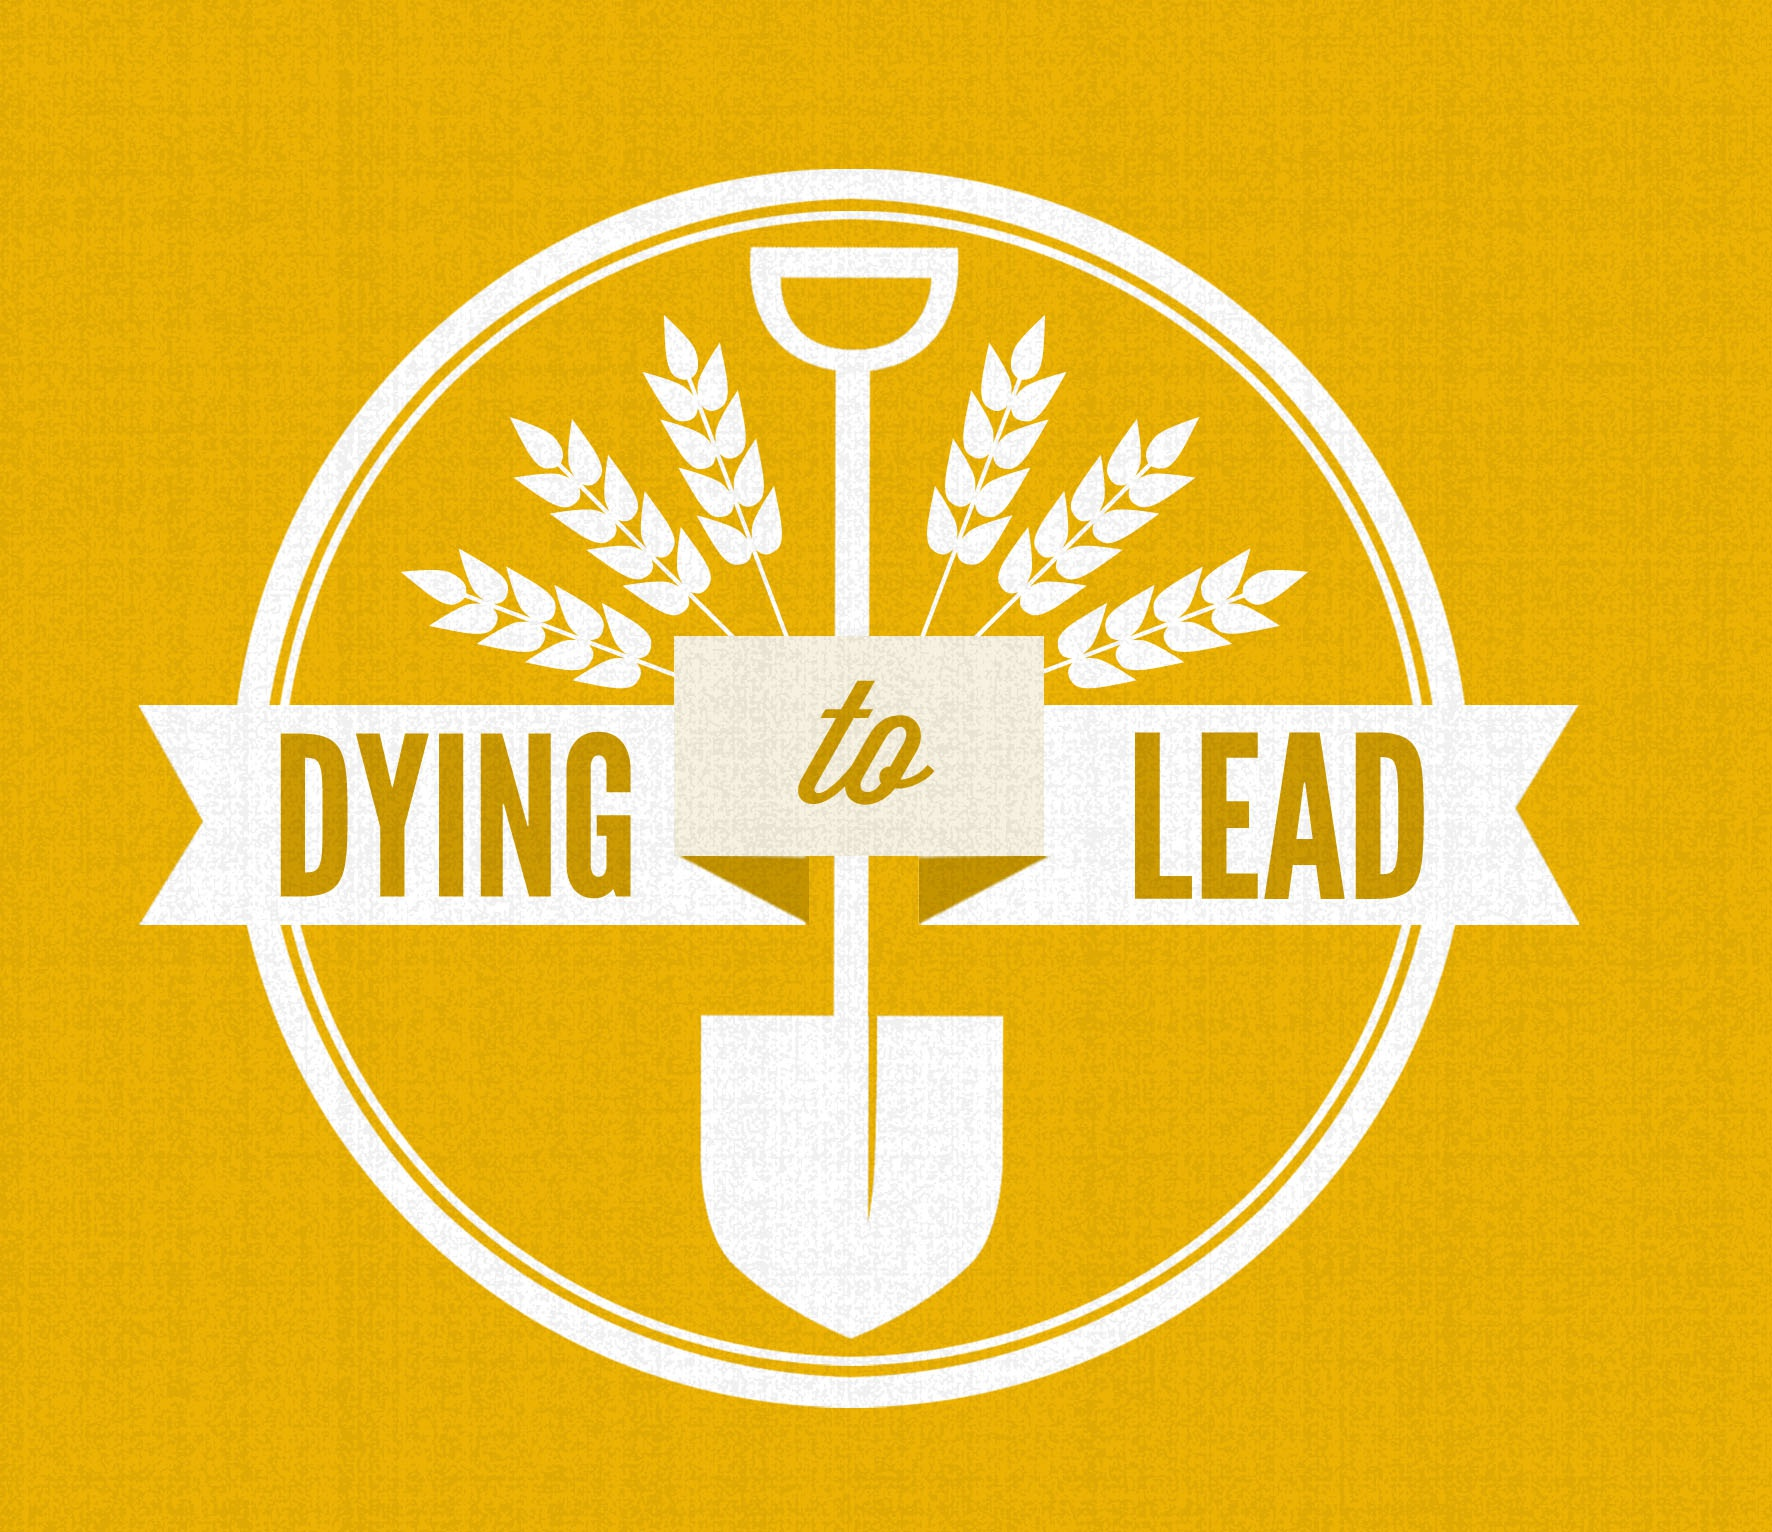 Dying to live full